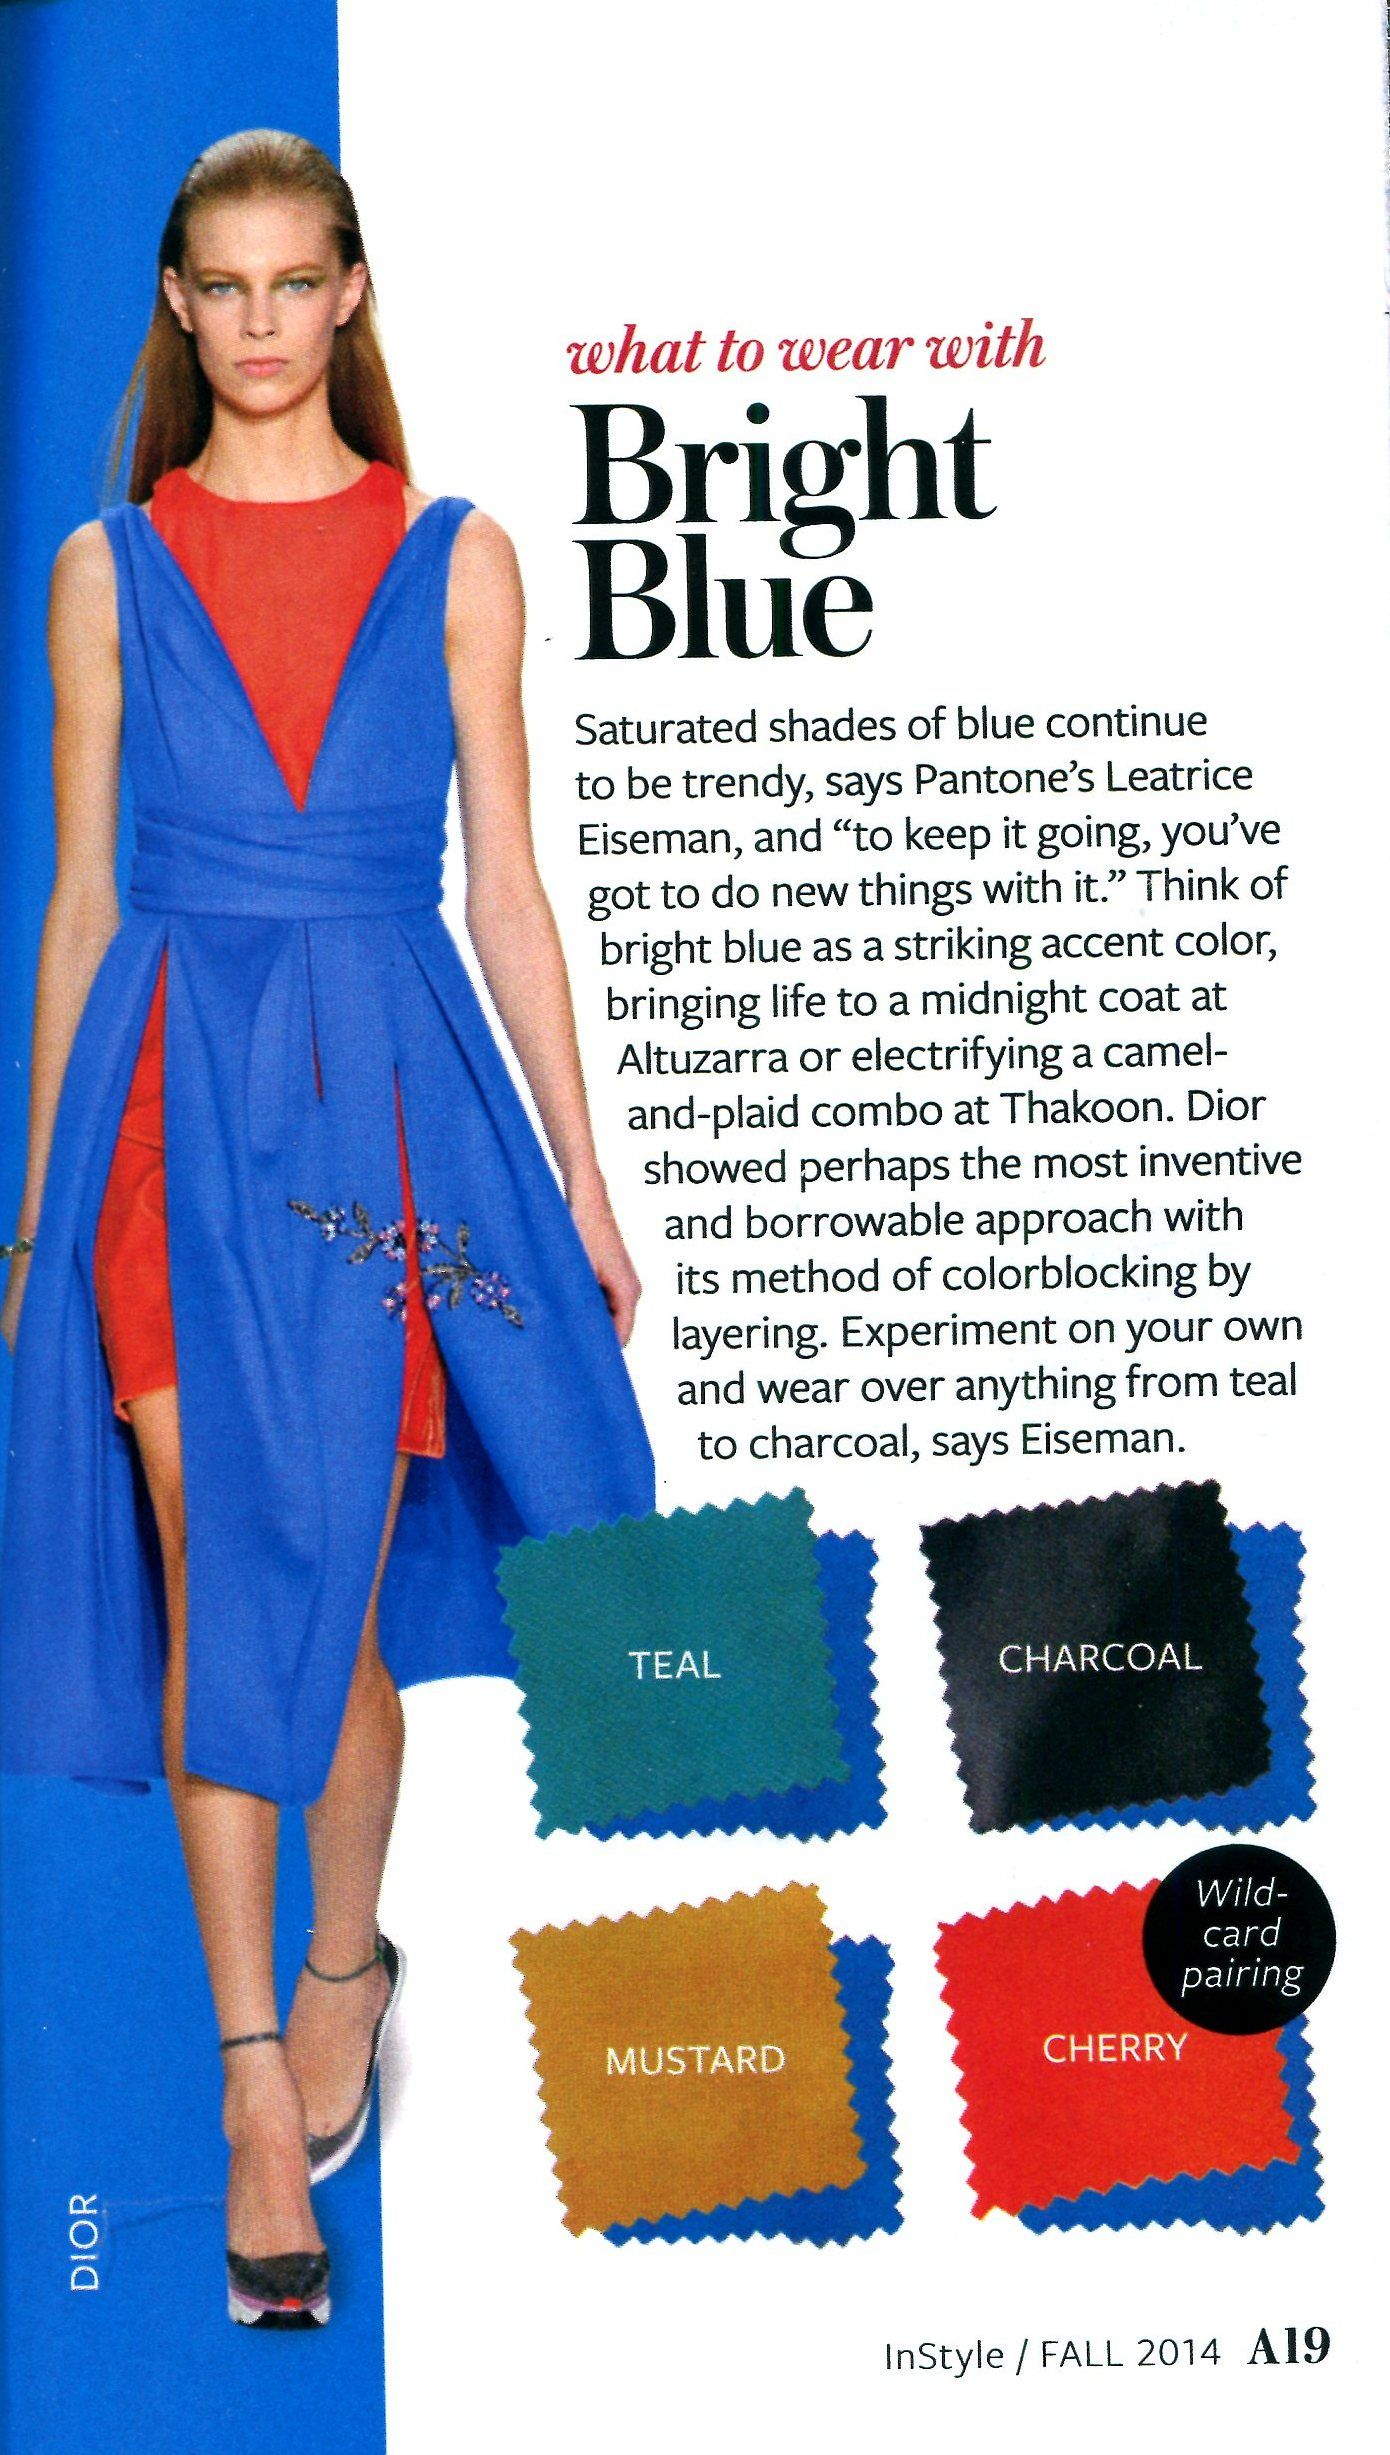 What To Wear With Bright Blue Instyle Colour Combinations Fashion Instyle Color Crash Course Colorful Fashion